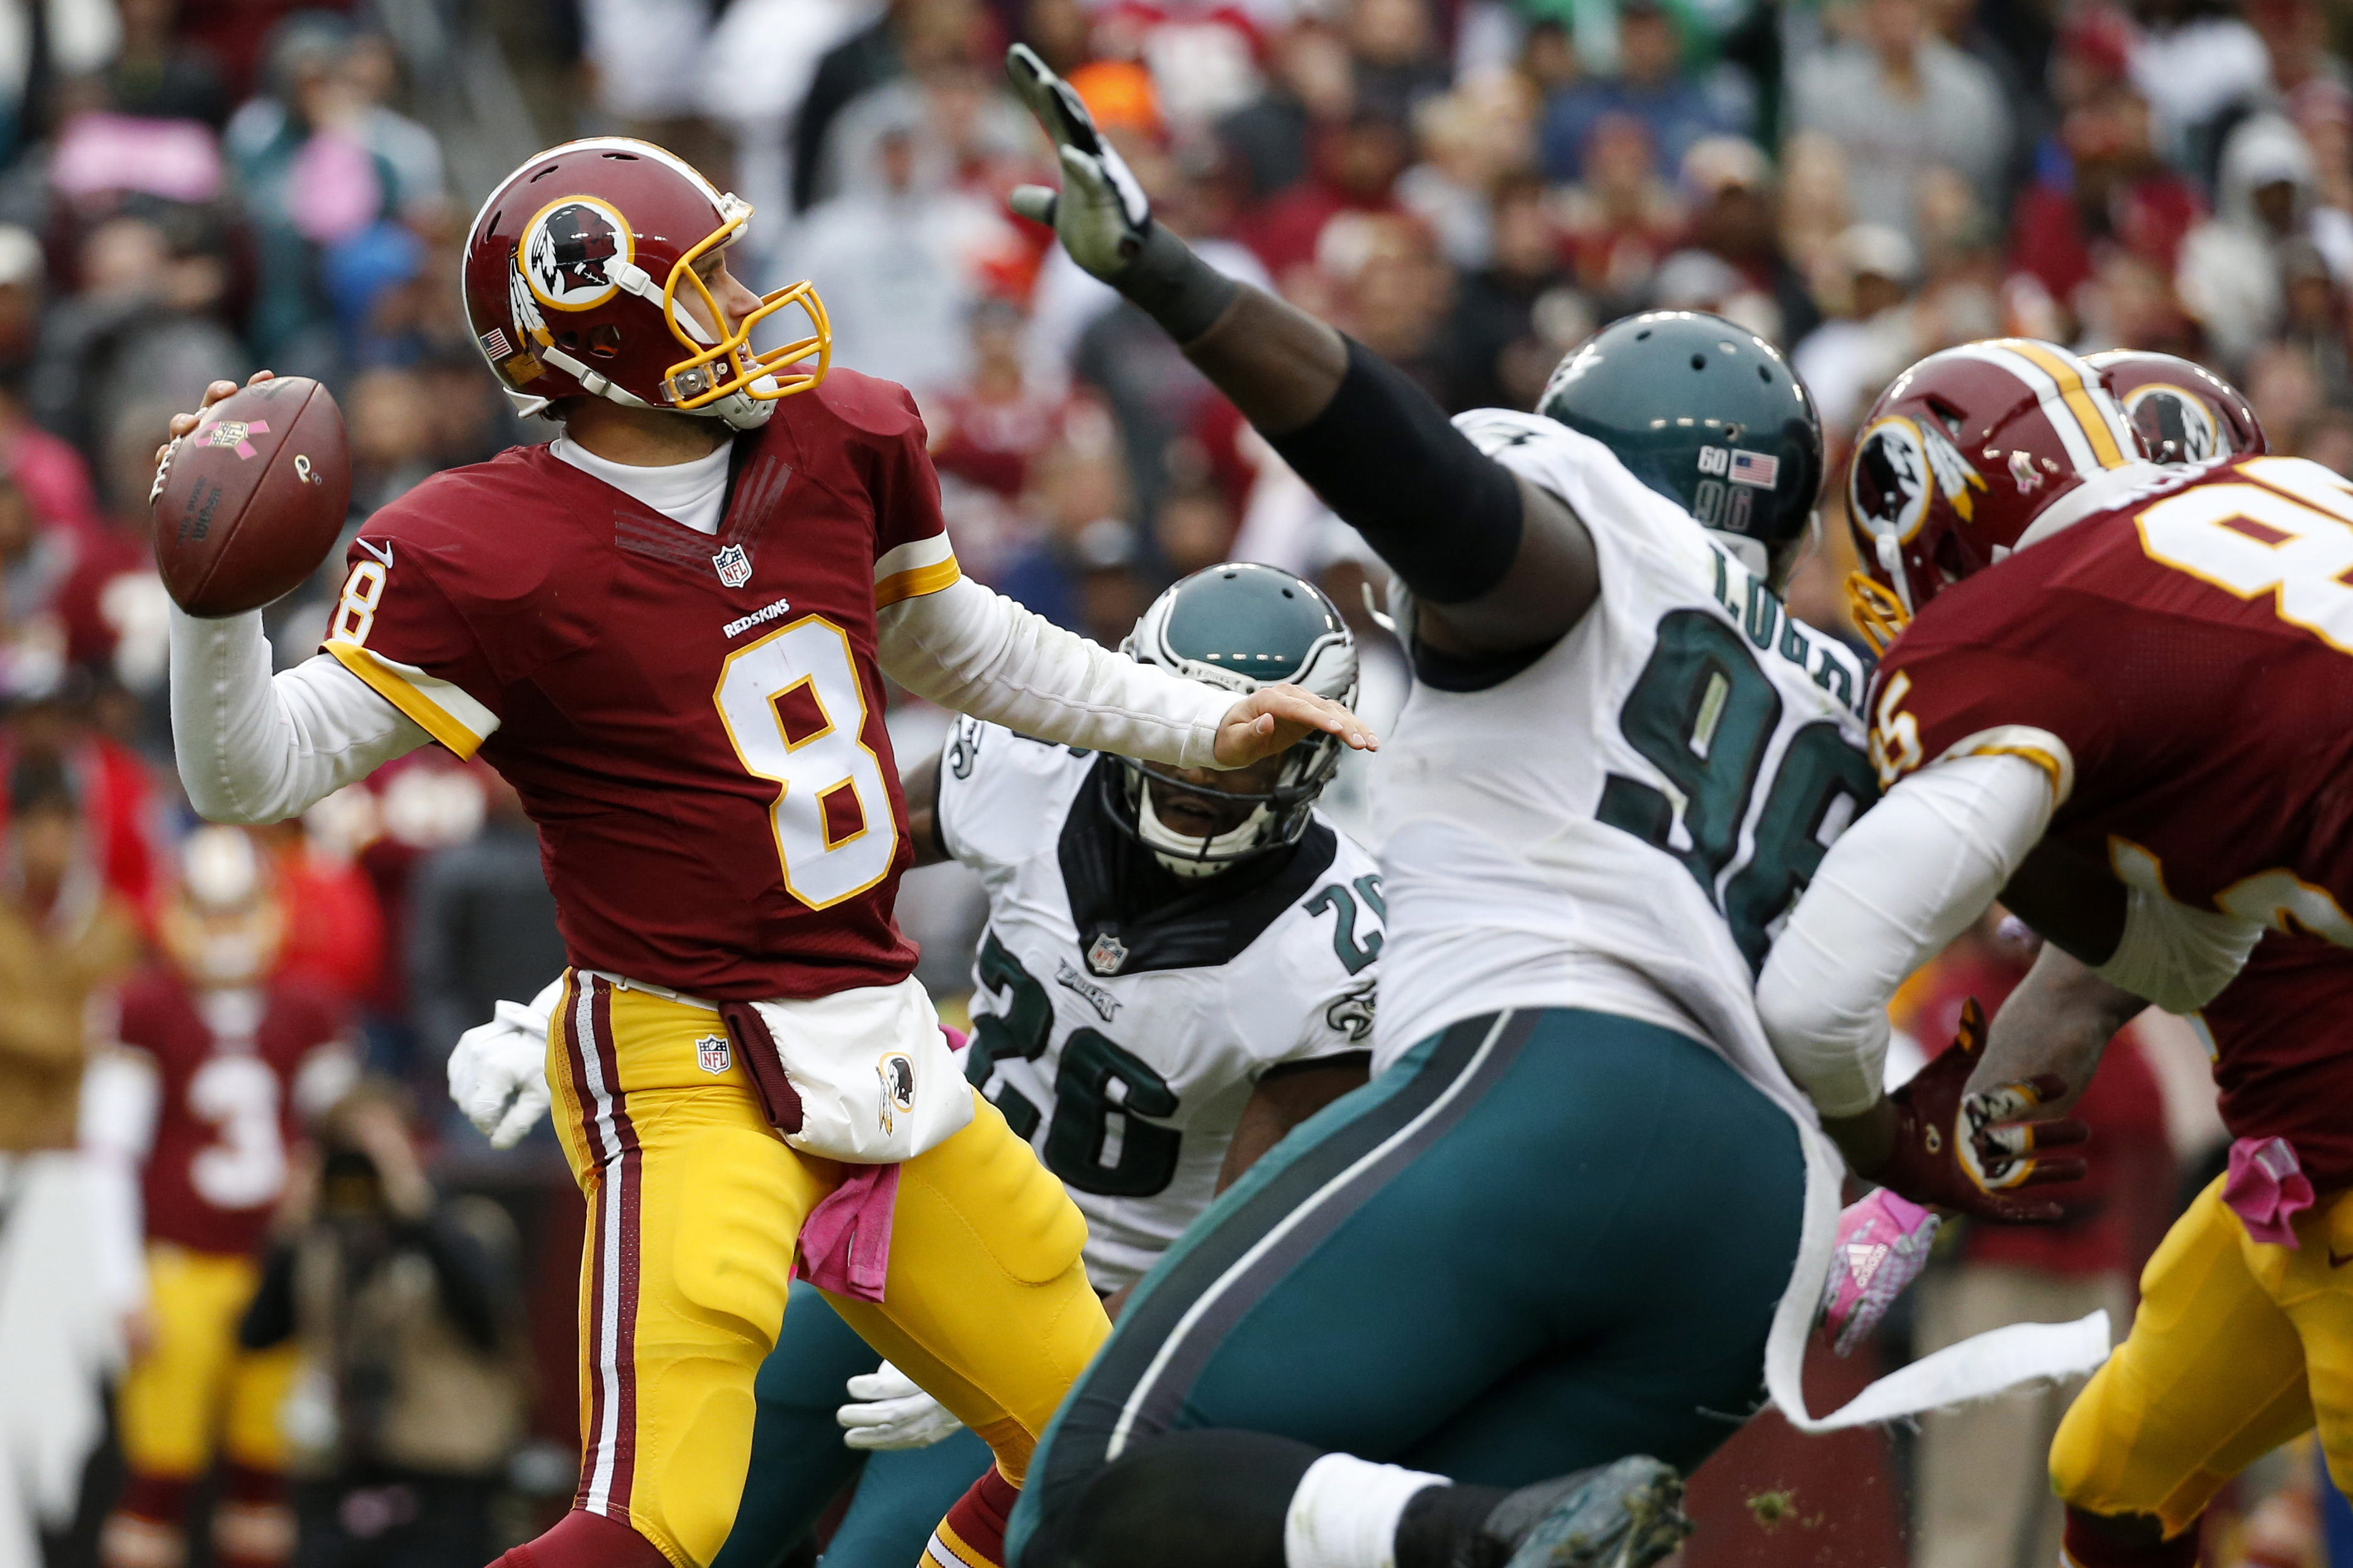 In this photo taken Oct. 4, 2015, Washington Redskins quarterback Kirk Cousins (8) passes the ball during the second half of an NFL football game against the Philadelphia Eagles in Landover, Md. After six last-place finishes in the past seven seasons, spe